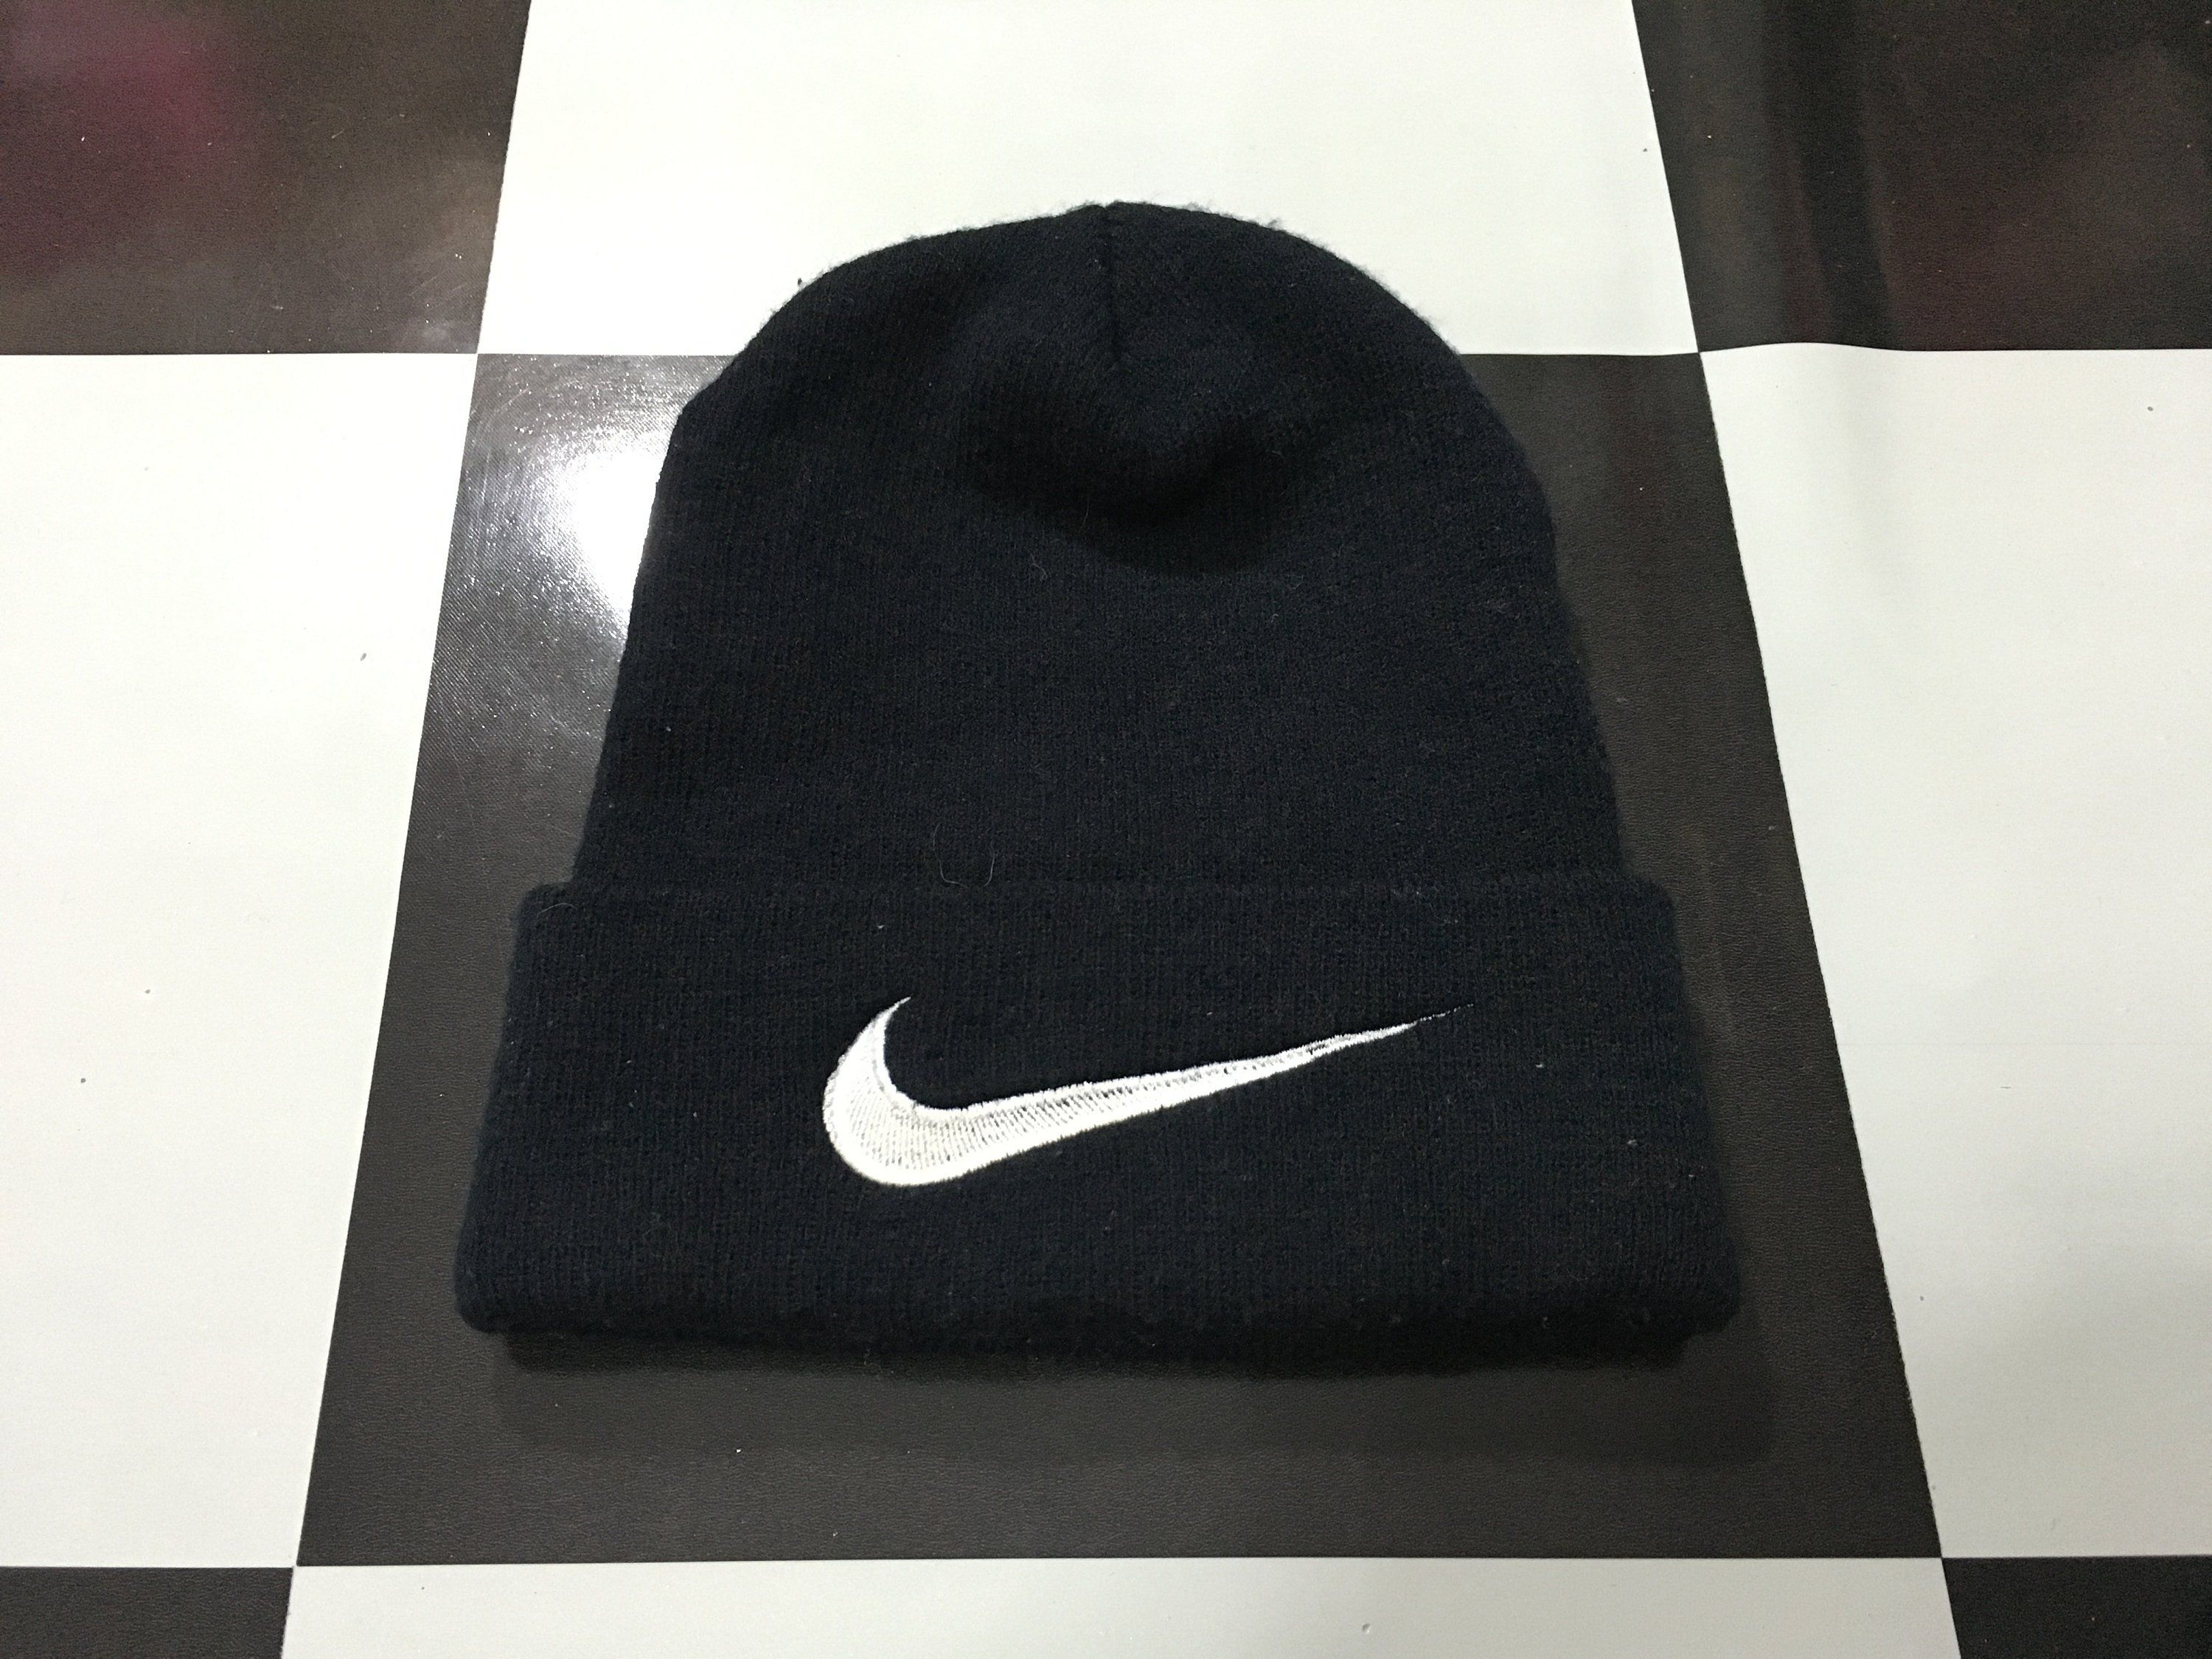 14837e69 Vintage Nike beanie hat big swoosh logo nike swoosh logo embroidered Free  size Excellent condition by AlivevintageShop on Etsy